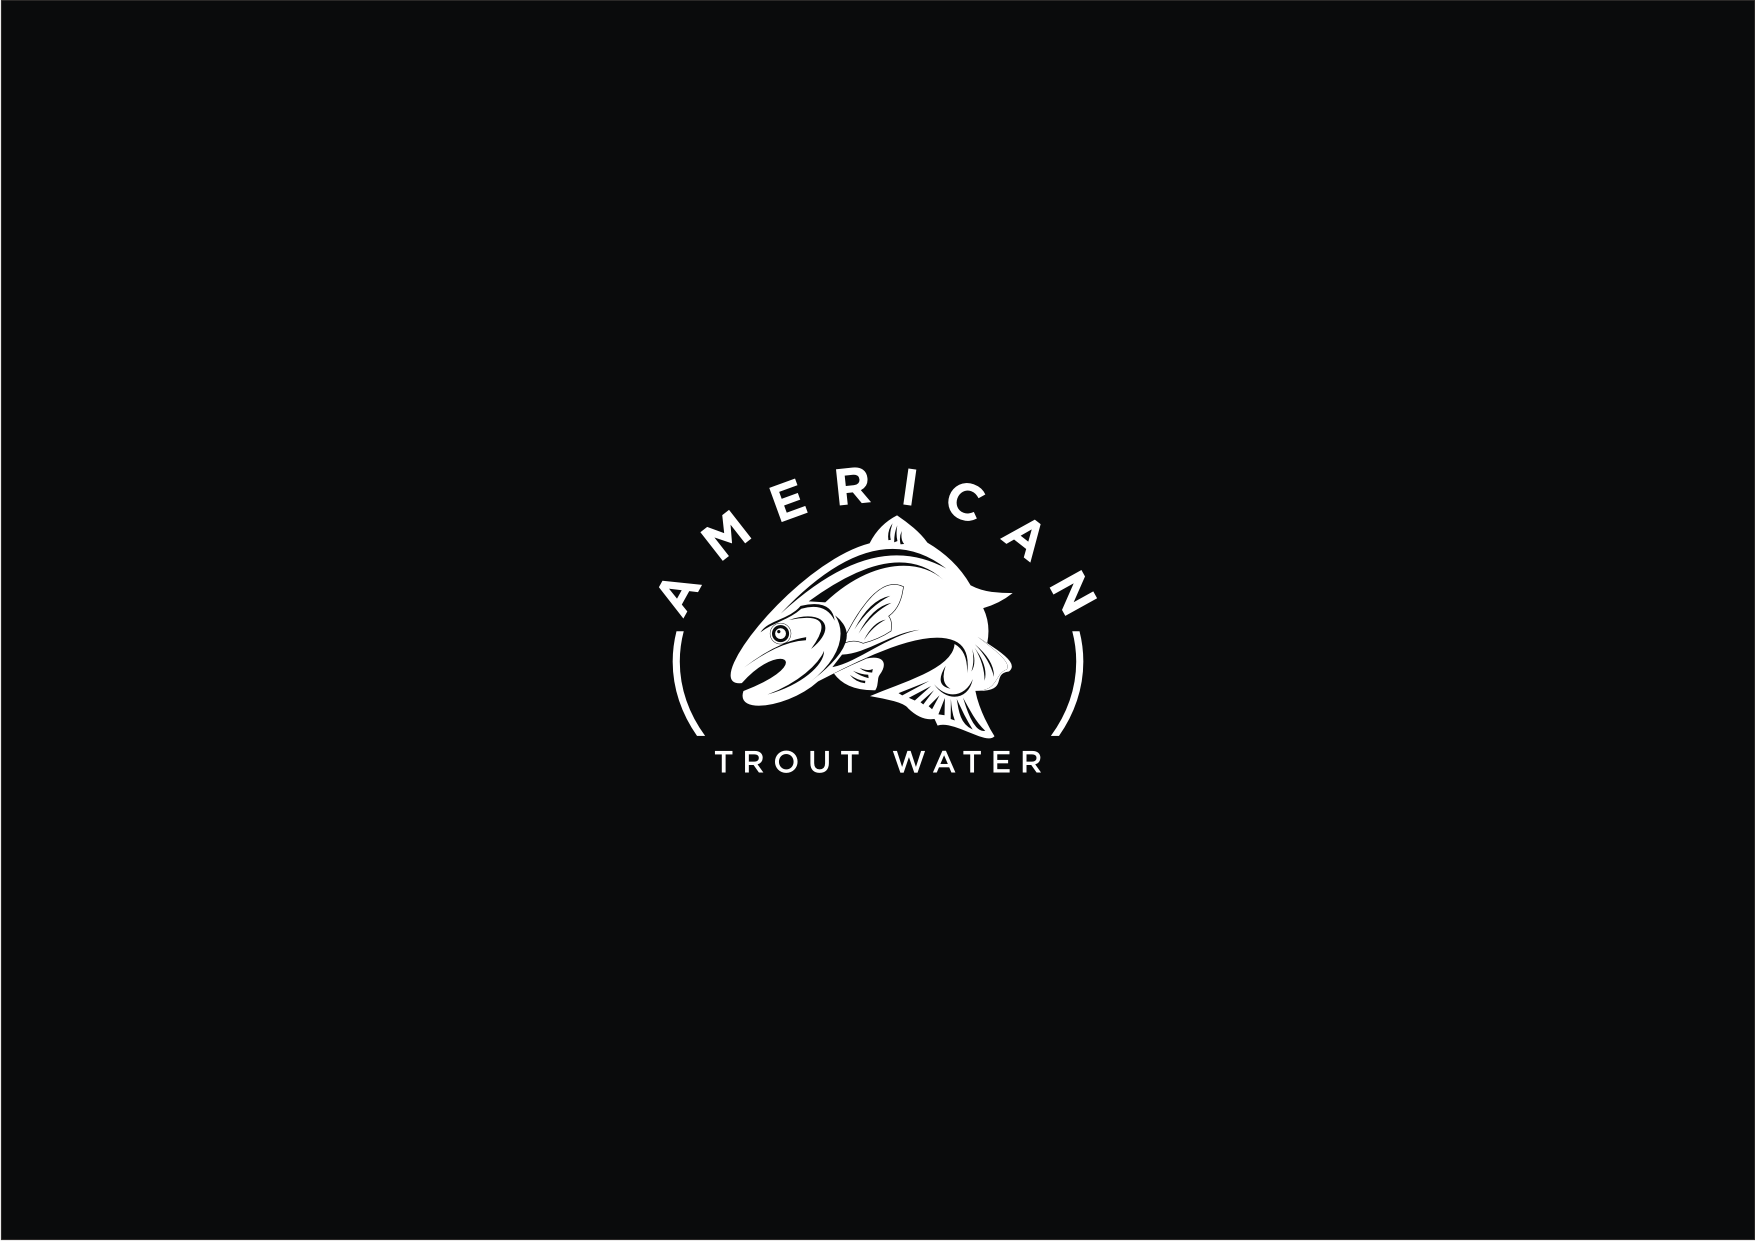 Logo Design by Sigitumarali Sigit - Entry No. 1 in the Logo Design Contest American Trout Water Logo Design.